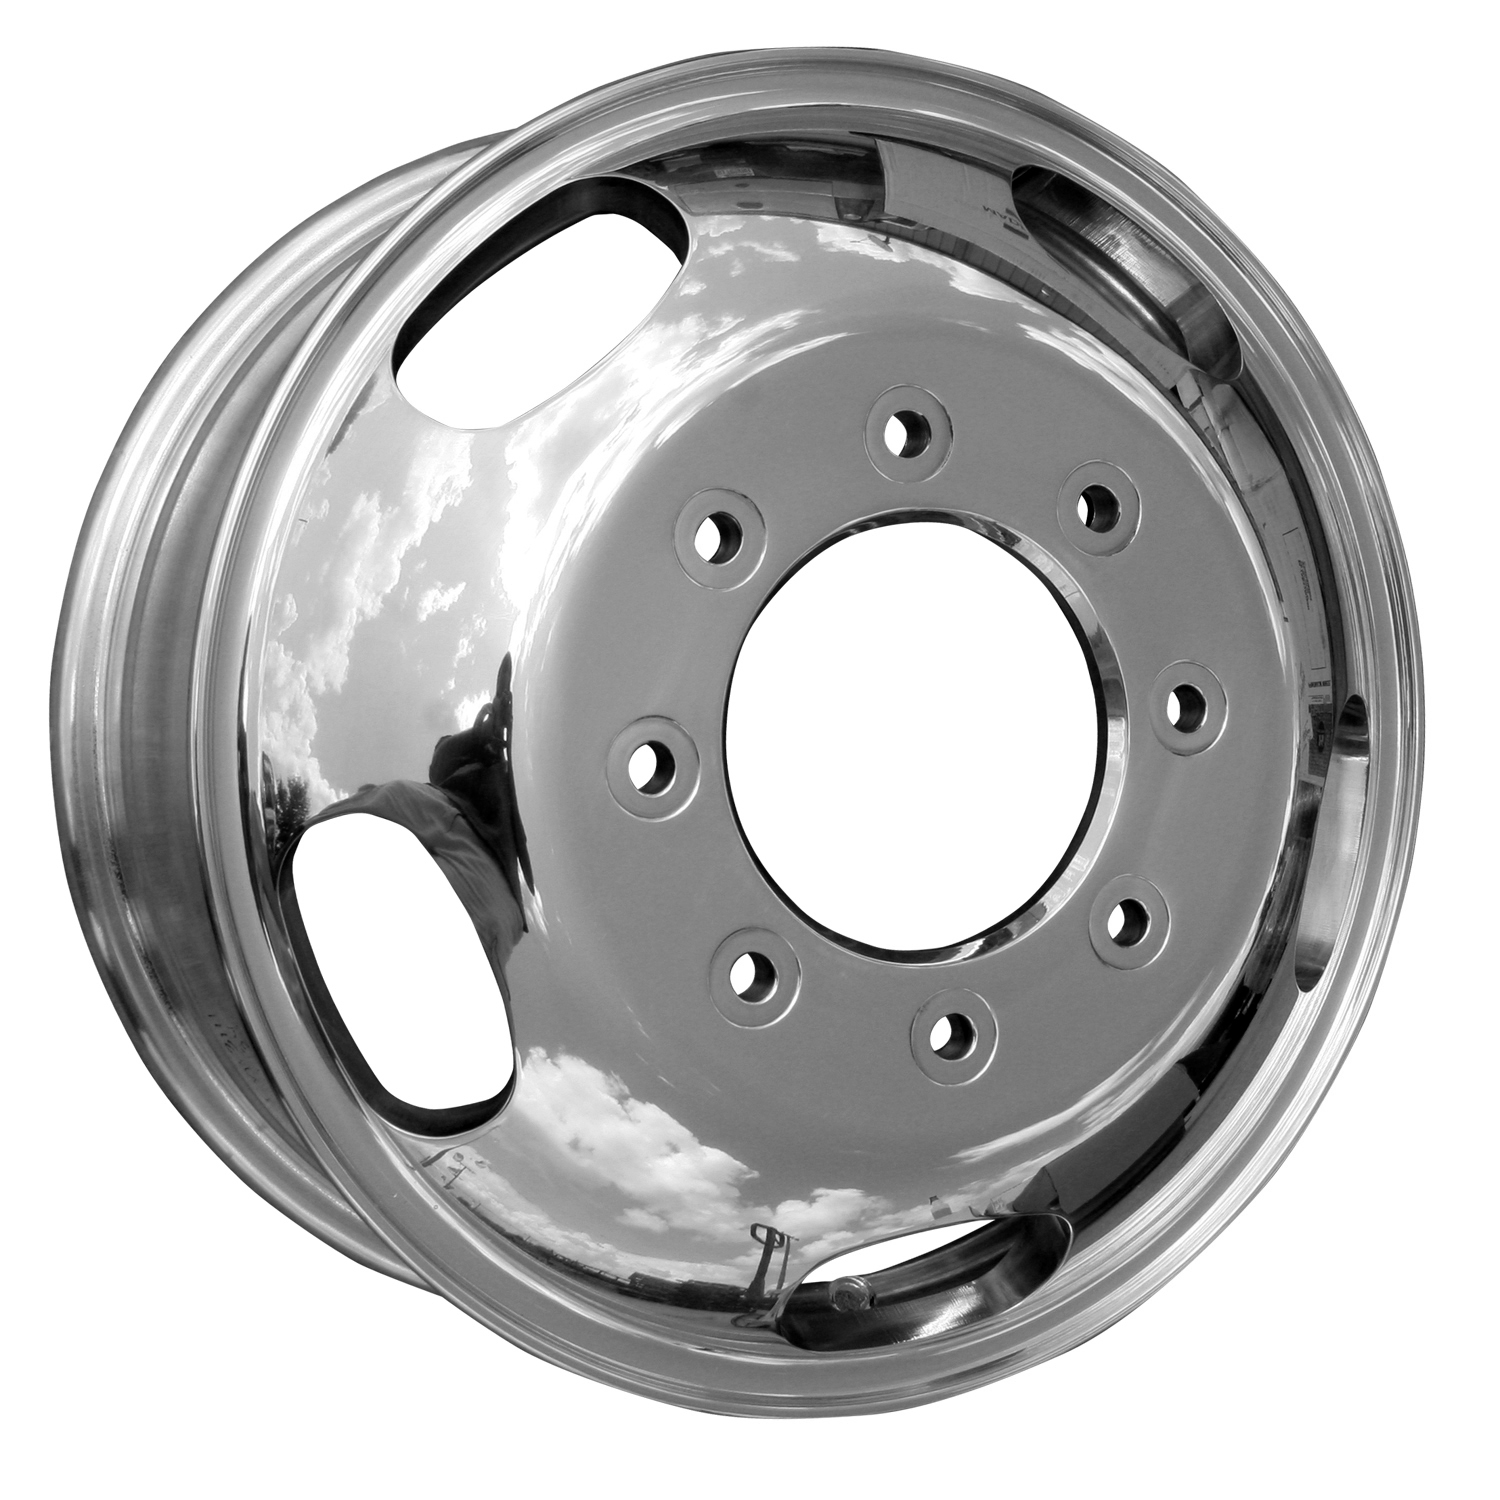 2005-2009 Ford F-350  17x6.5 Aluminum Alloy Wheel, Rim Front Polished Full Face - 3618